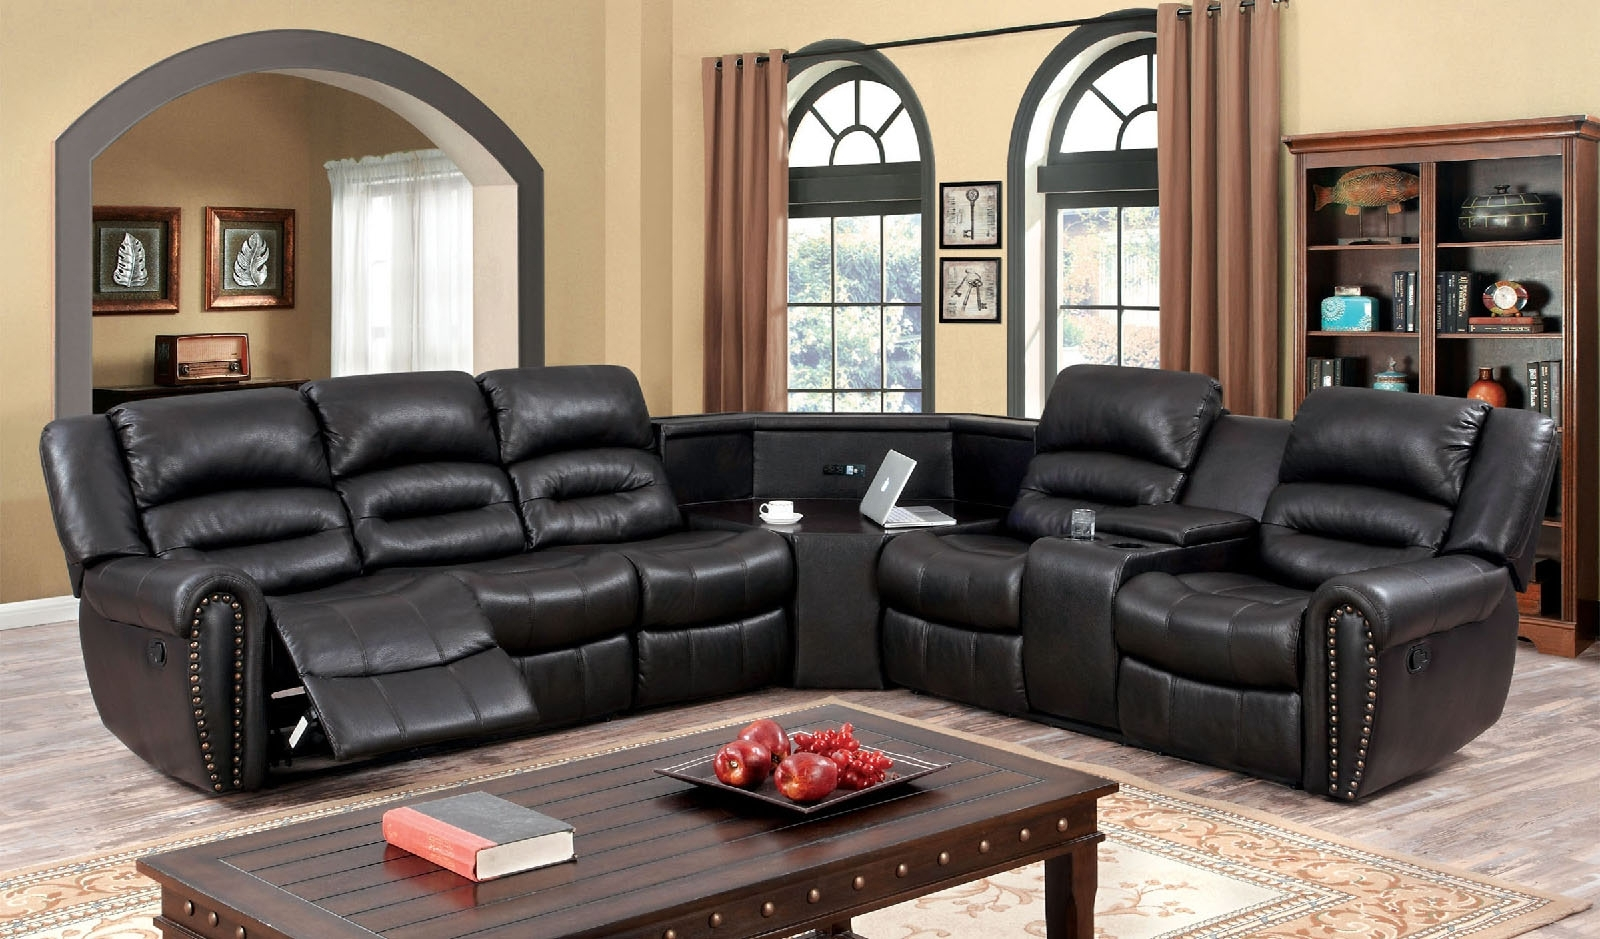 Sectional Sofas With Power Recliners Regarding Widely Used Sofa : Best Power Reclining Sectional Sofas Modern Reclining (View 12 of 20)